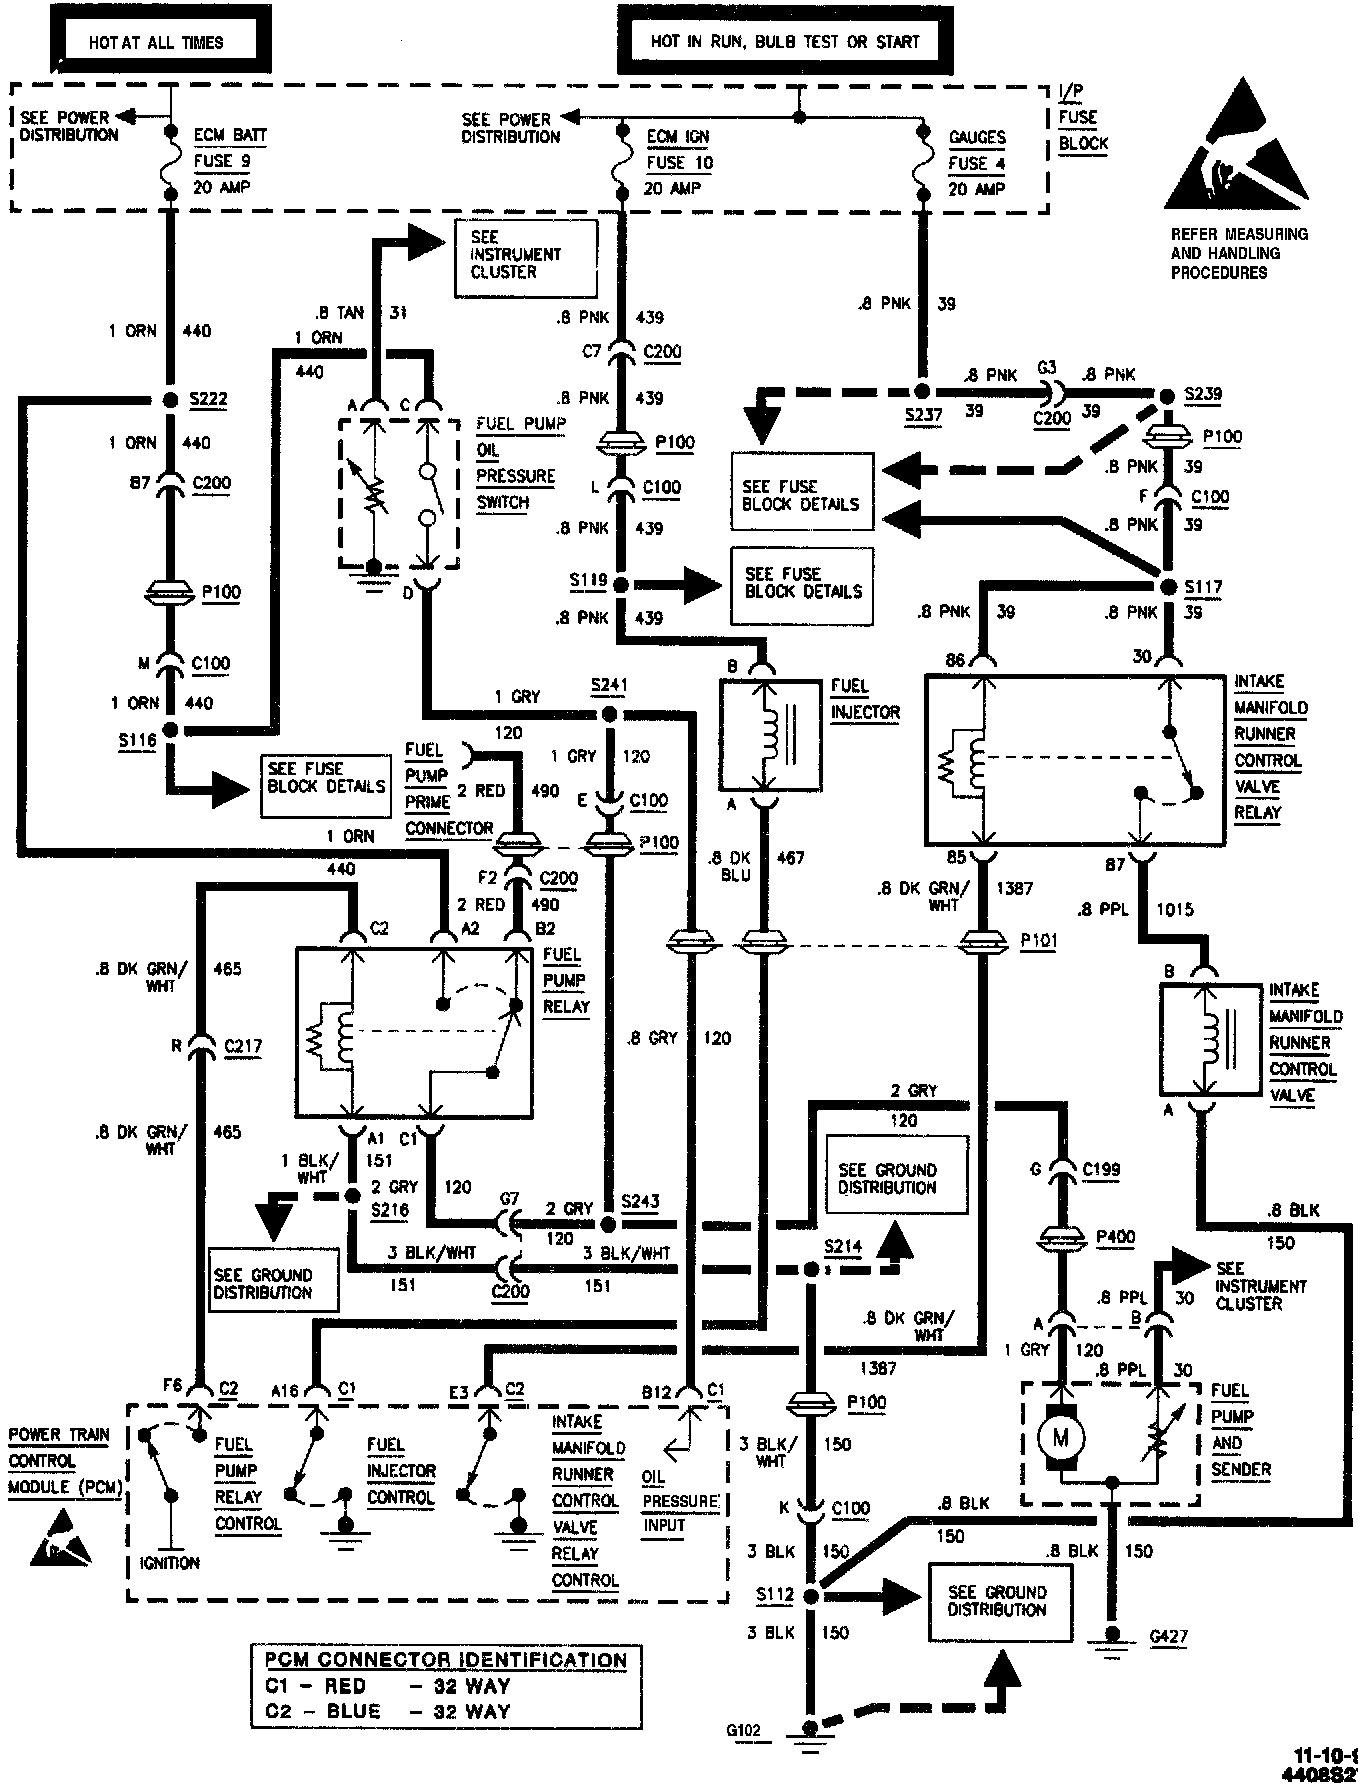 [DIAGRAM_09CH]  1995 Chevy G30 Wiring Diagram - 2003 Hummer Fuse Box for Wiring Diagram  Schematics | Vista Wiring Diagrams |  | Wiring Diagram Schematics